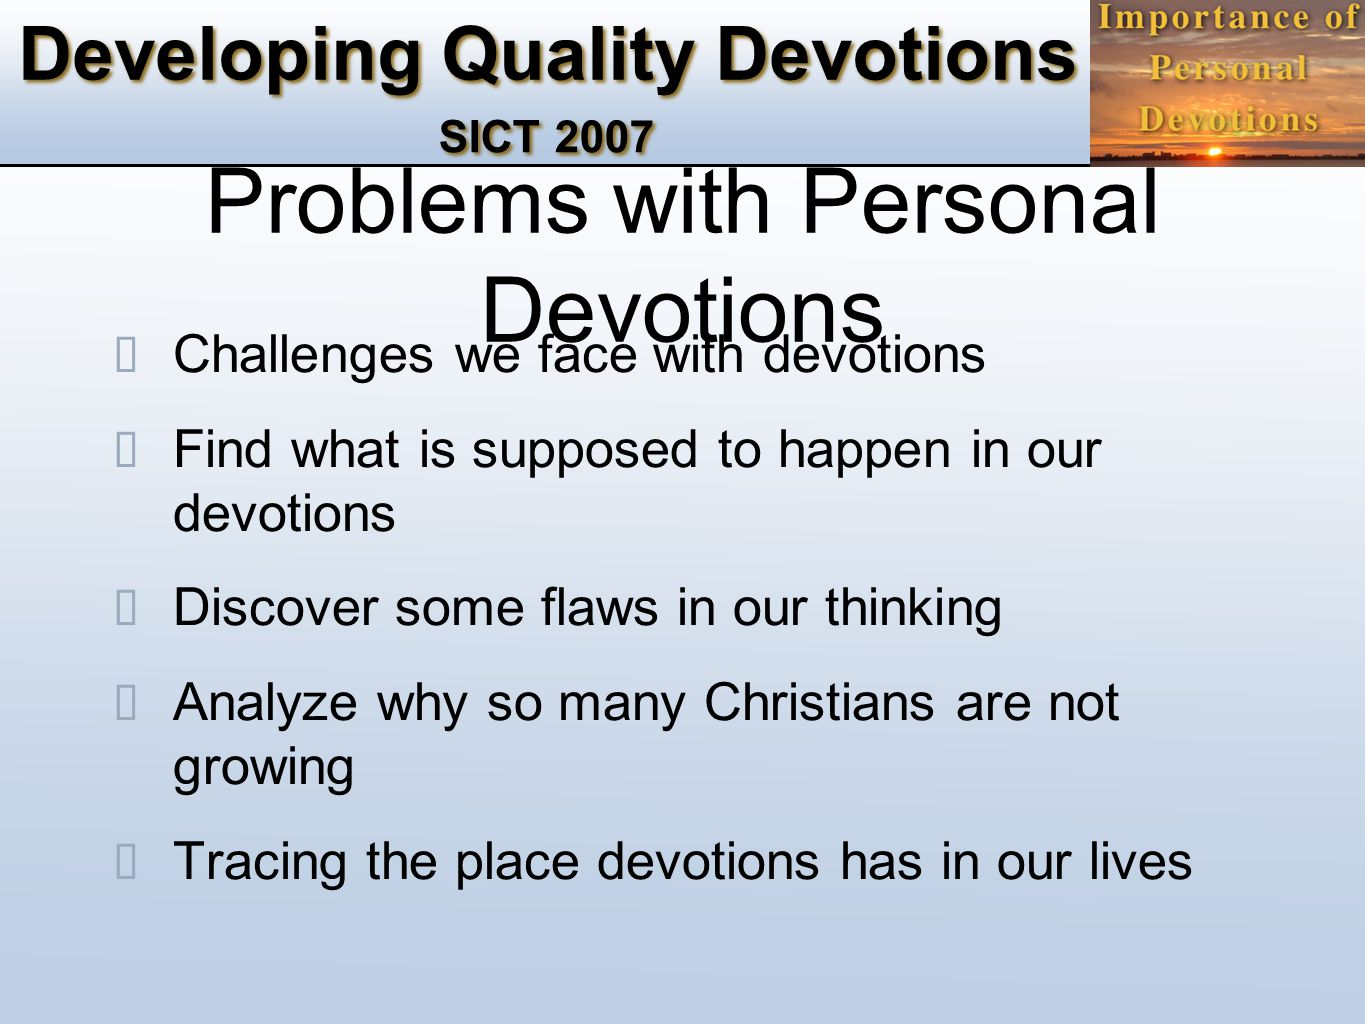 Developing Quality Devotions SICT 2007 Problems with Personal Devotions ✴ Challenges we face with devotions ✴ Find what is supposed to happen in our d